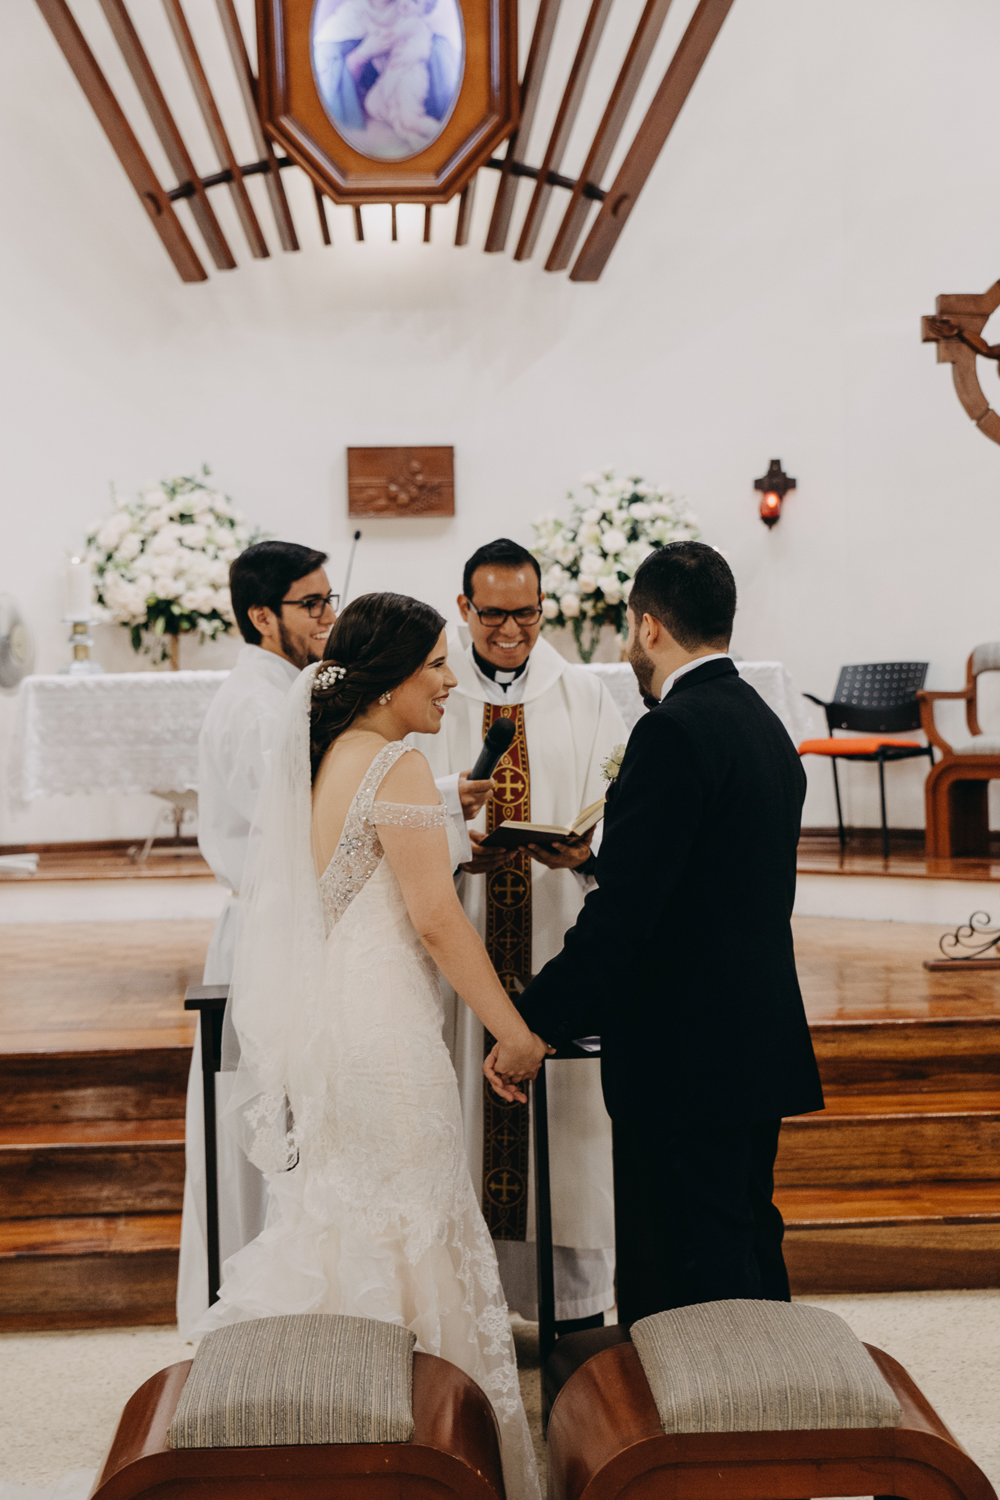 Michelle-Agurto-Fotografia-Bodas-Ecuador-Destination-Wedding-Photographer-Majito-Oscar-103.JPG